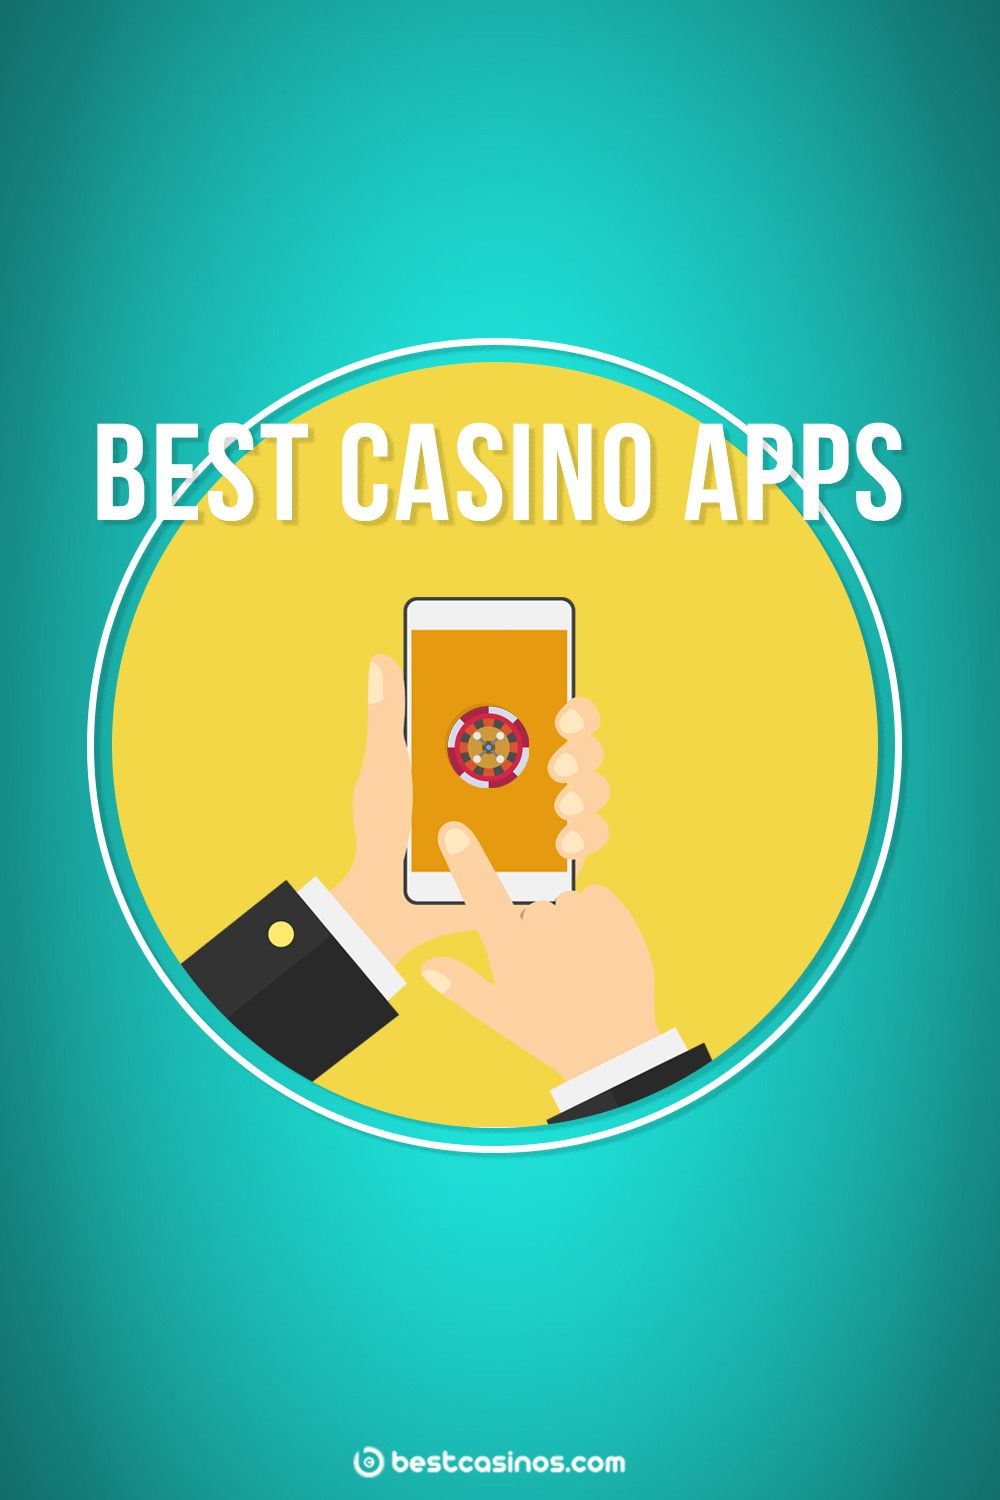 Top 7 Casino Apps in 2020 Best Mobile Apps That Pay Real